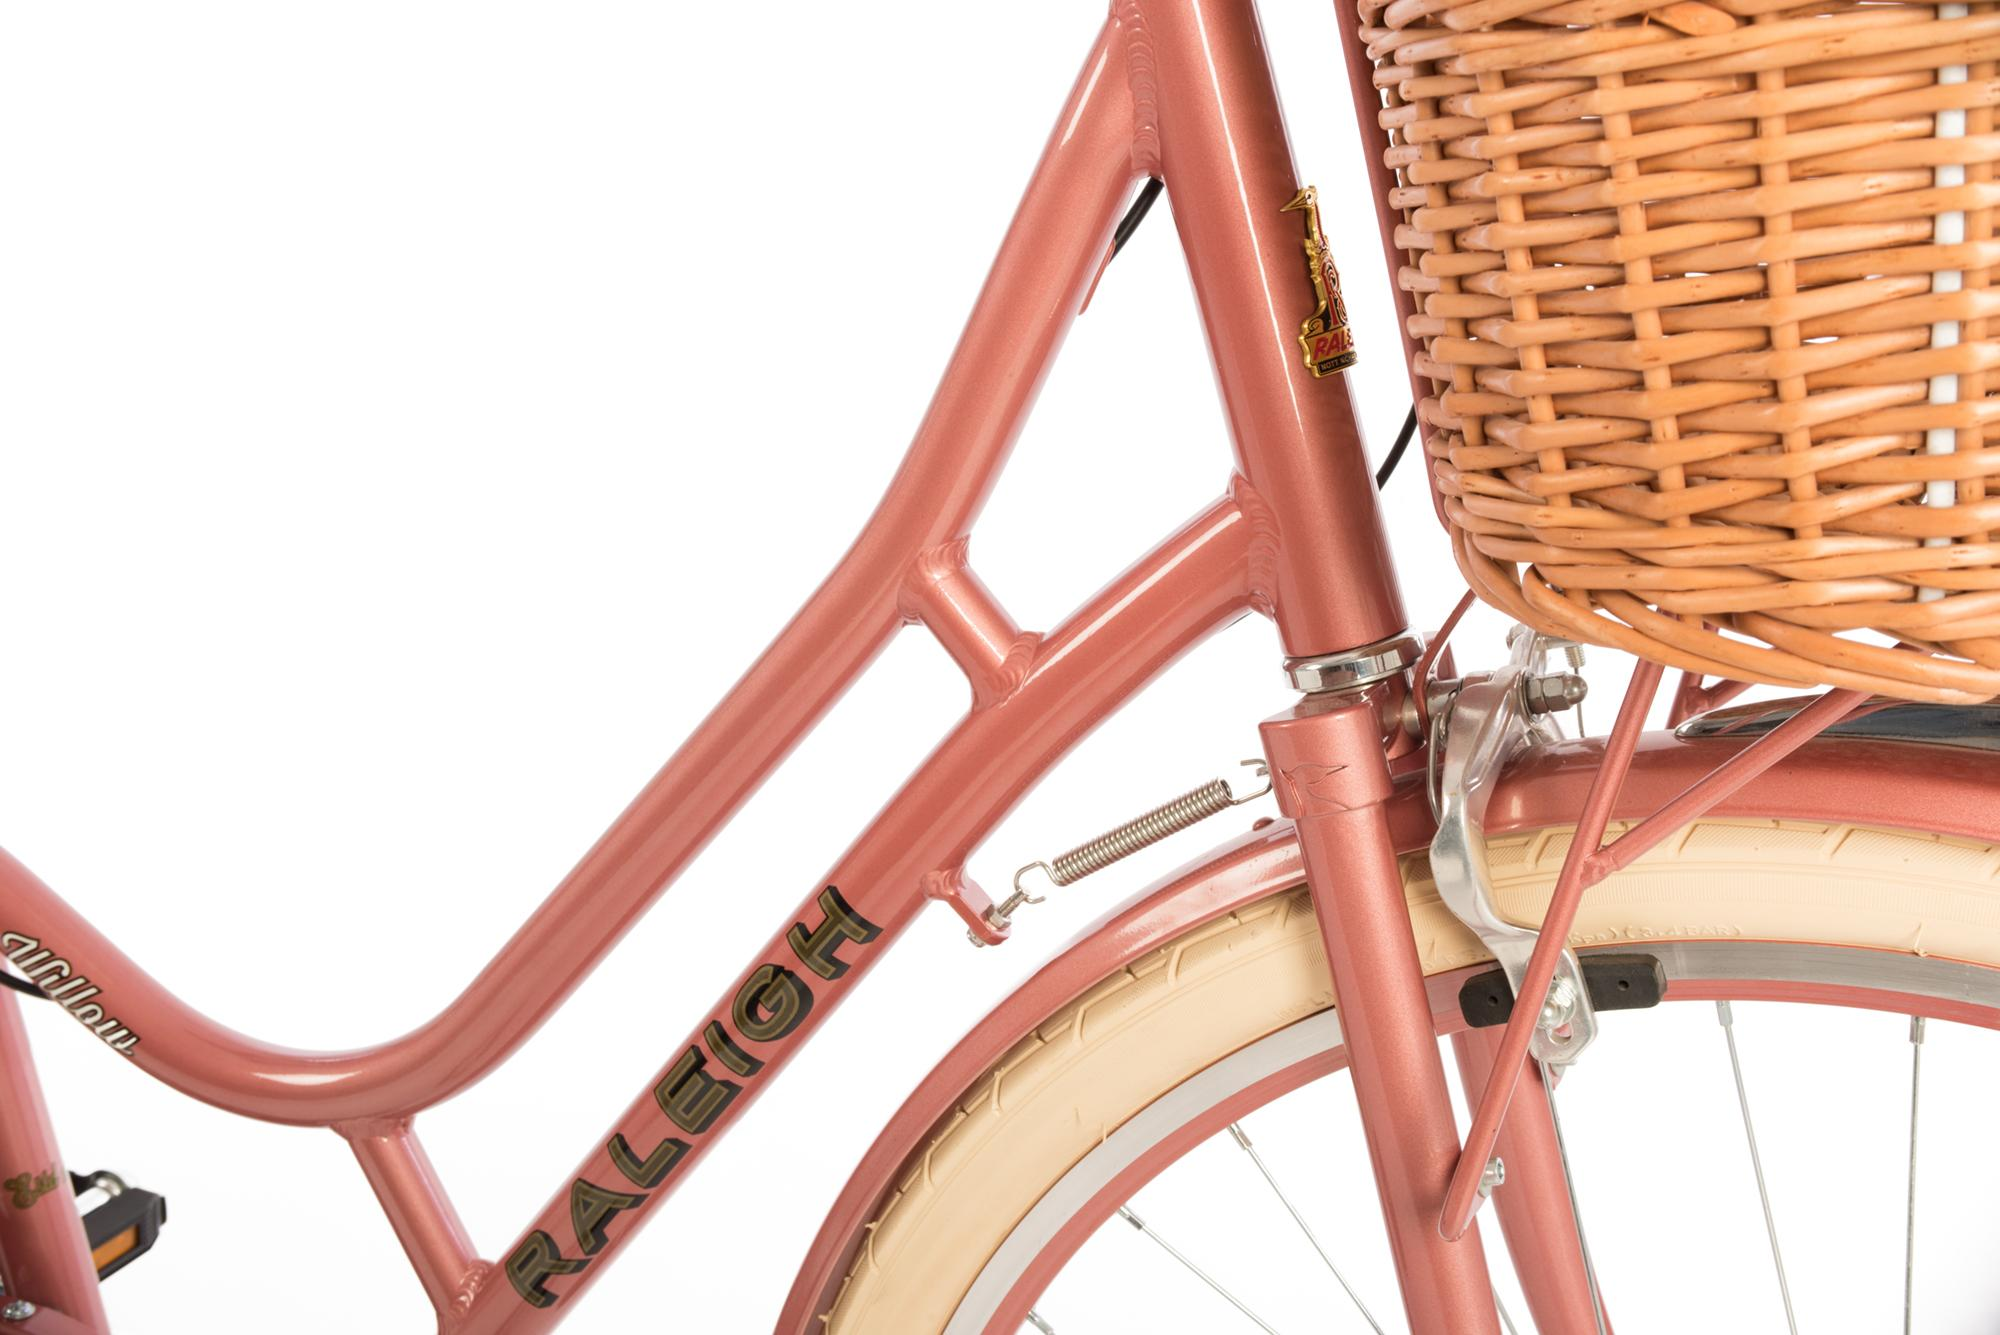 Detail of front brakes on the Raleigh Willow classic ladies bike in pink colour pink